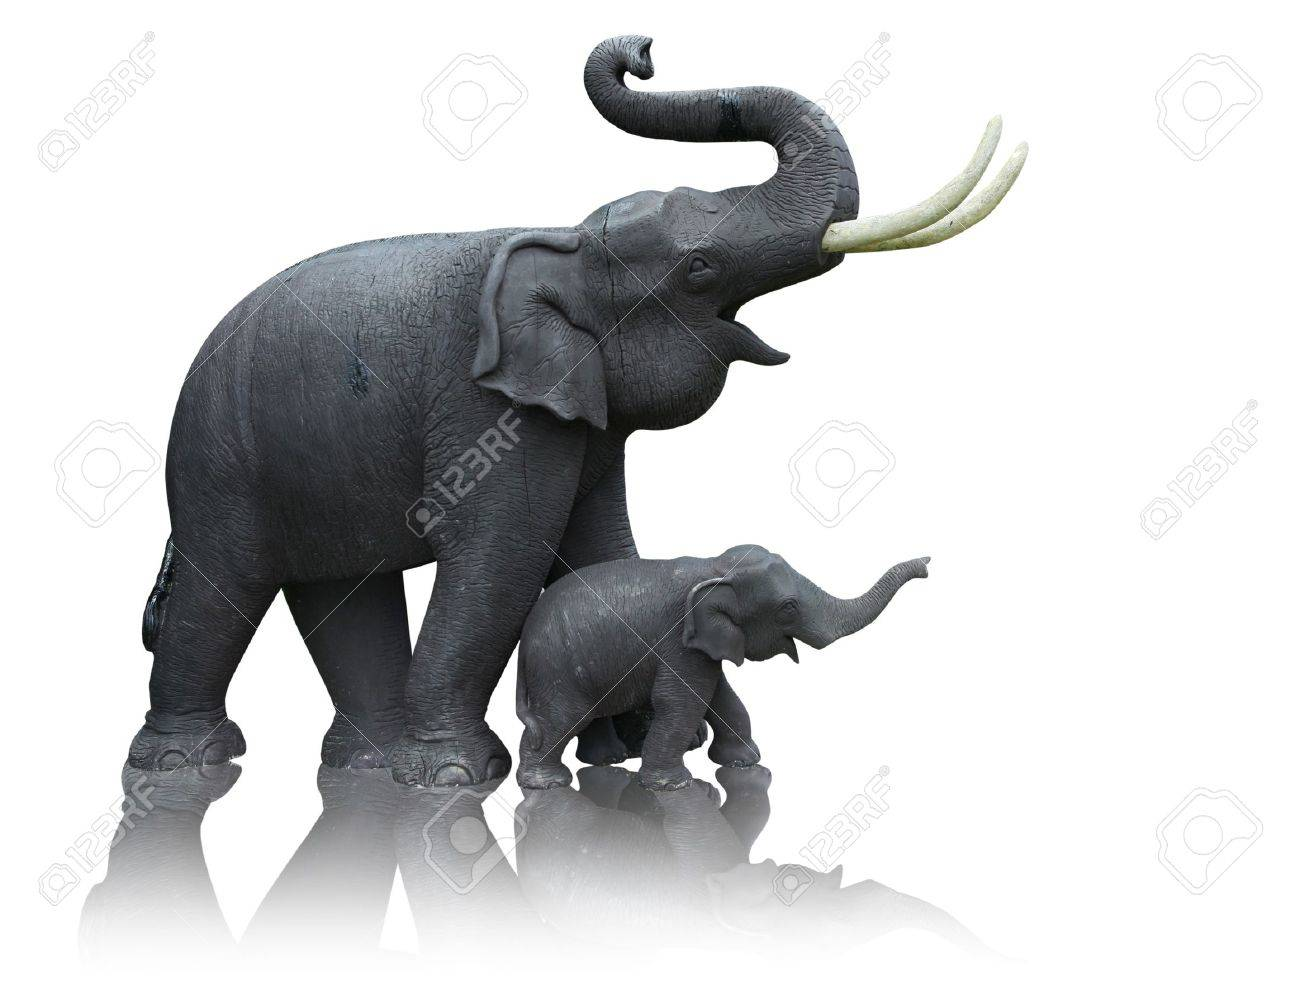 Mother and baby elephant made from the plaster mold formed by a hand-operated Stock Photo - 9141931